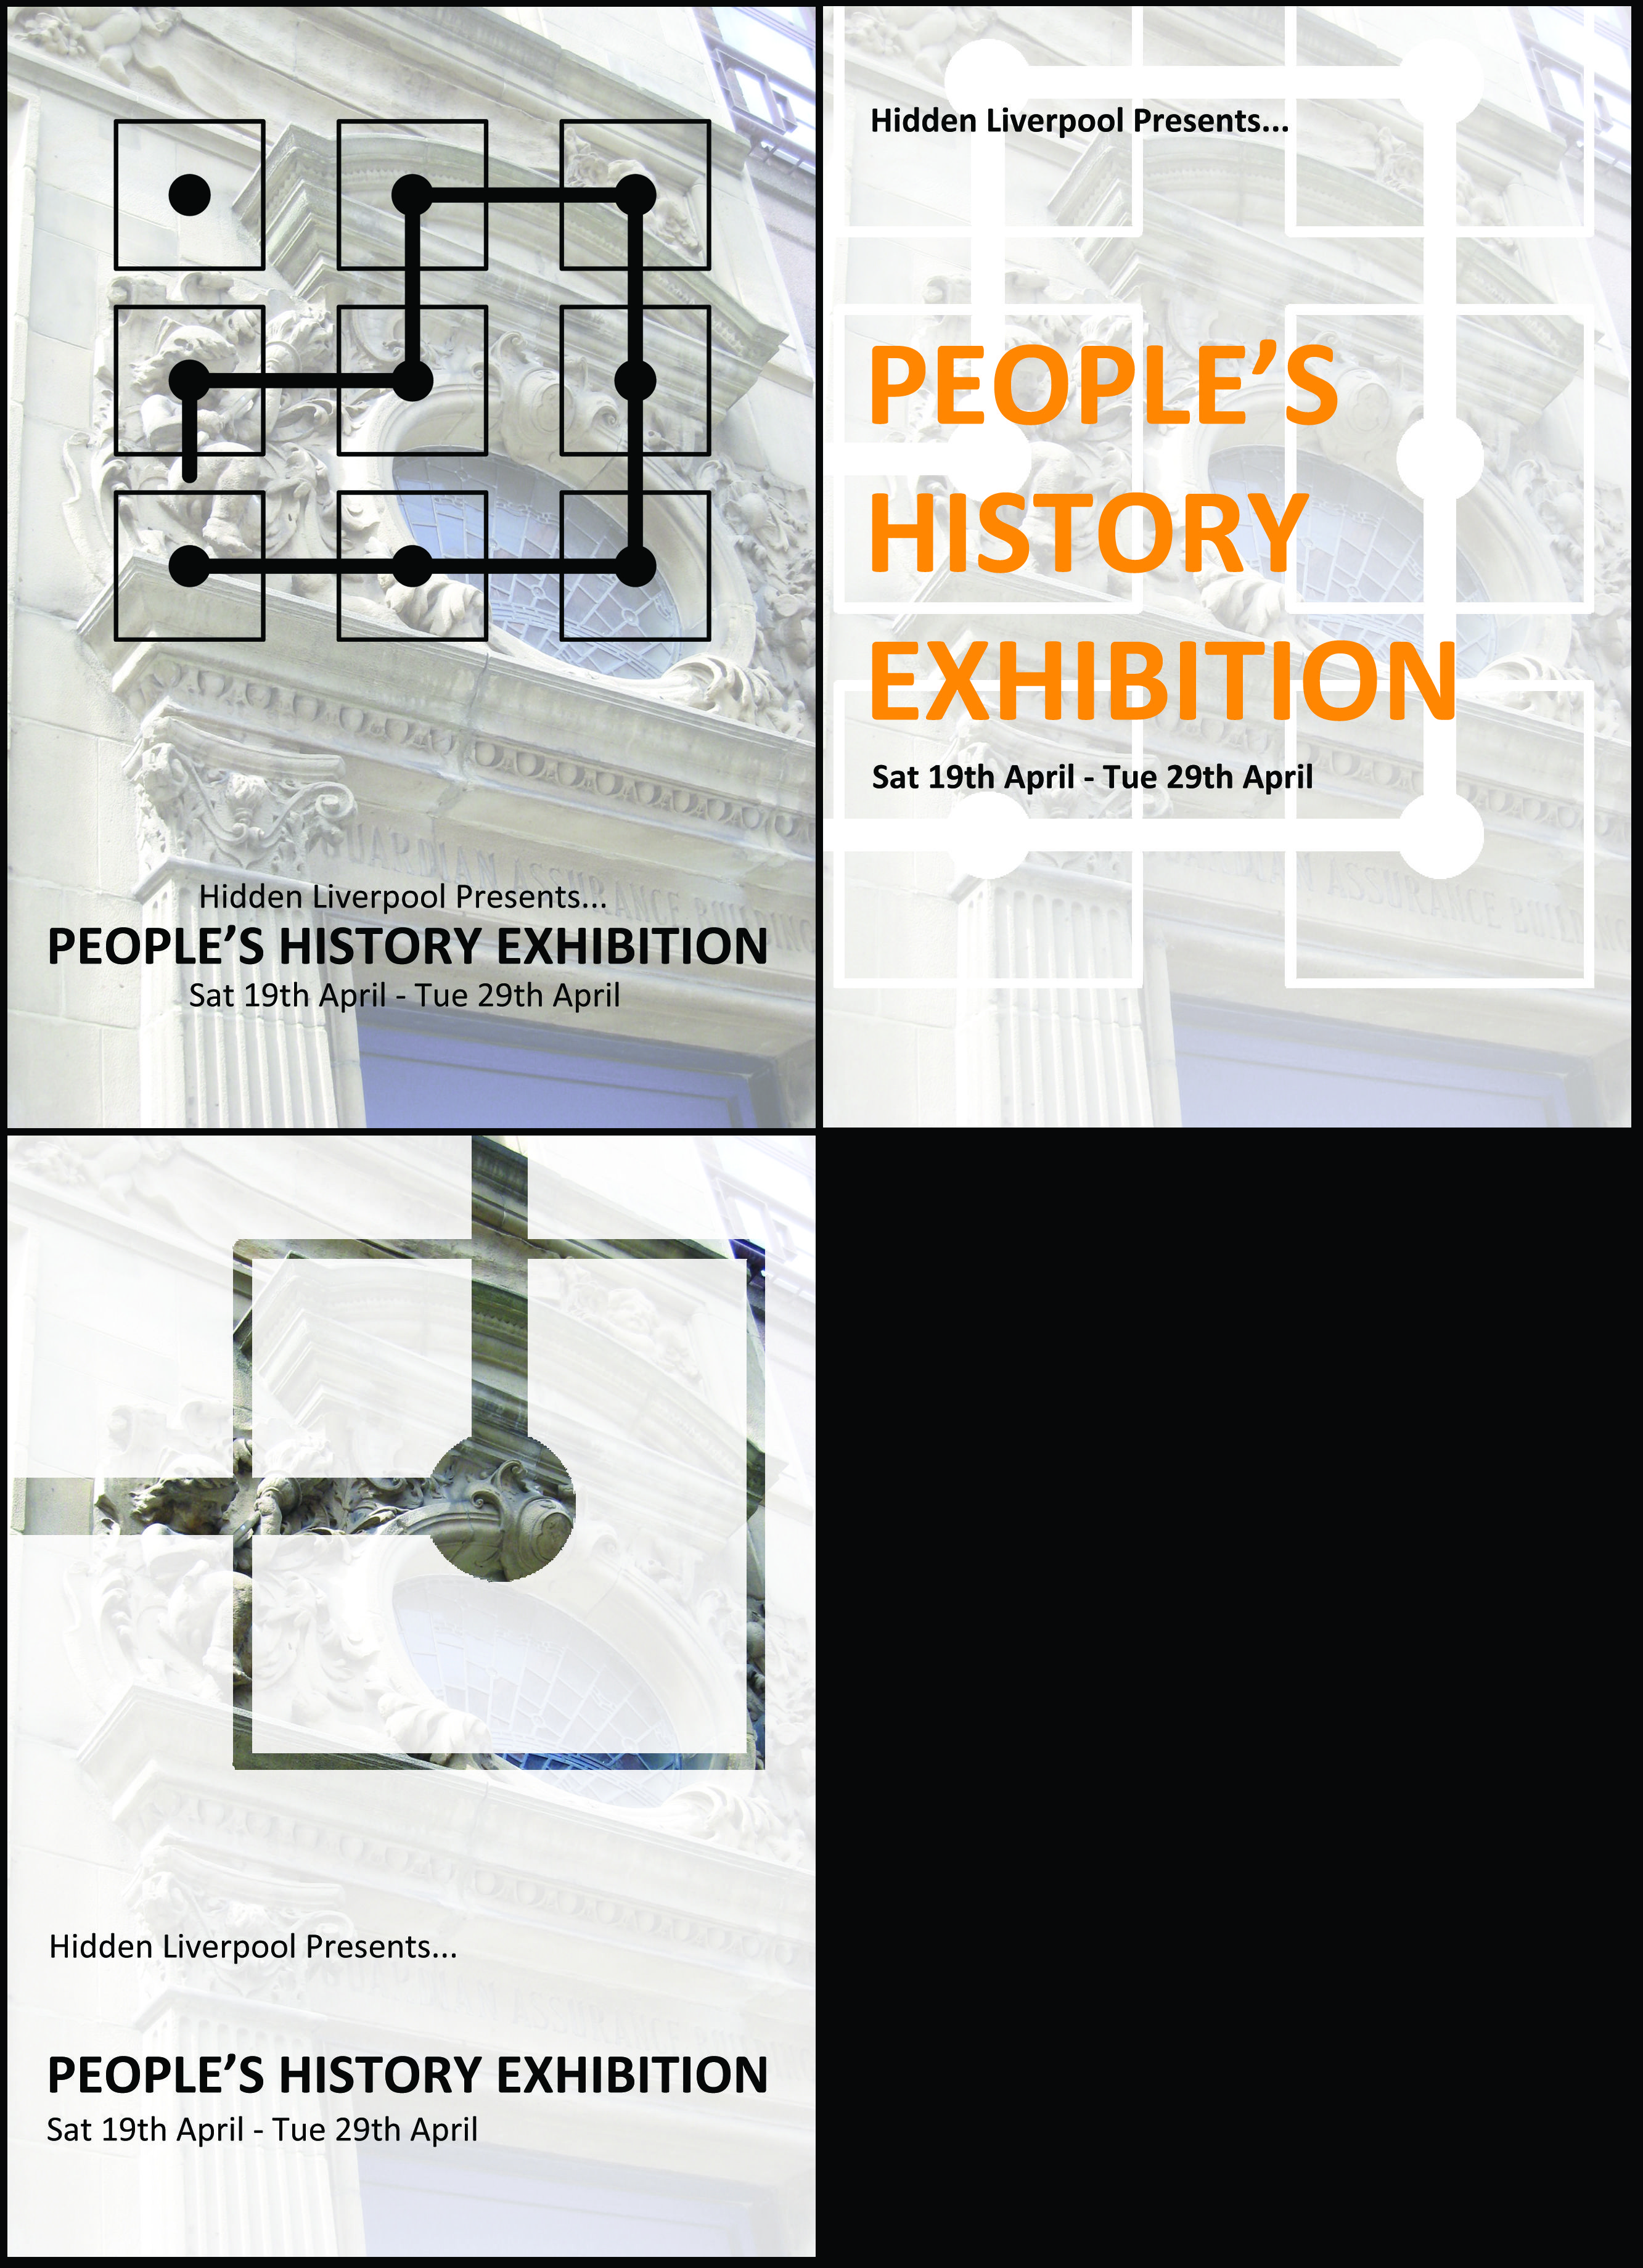 and a bit more History exhibition, Exhibition space